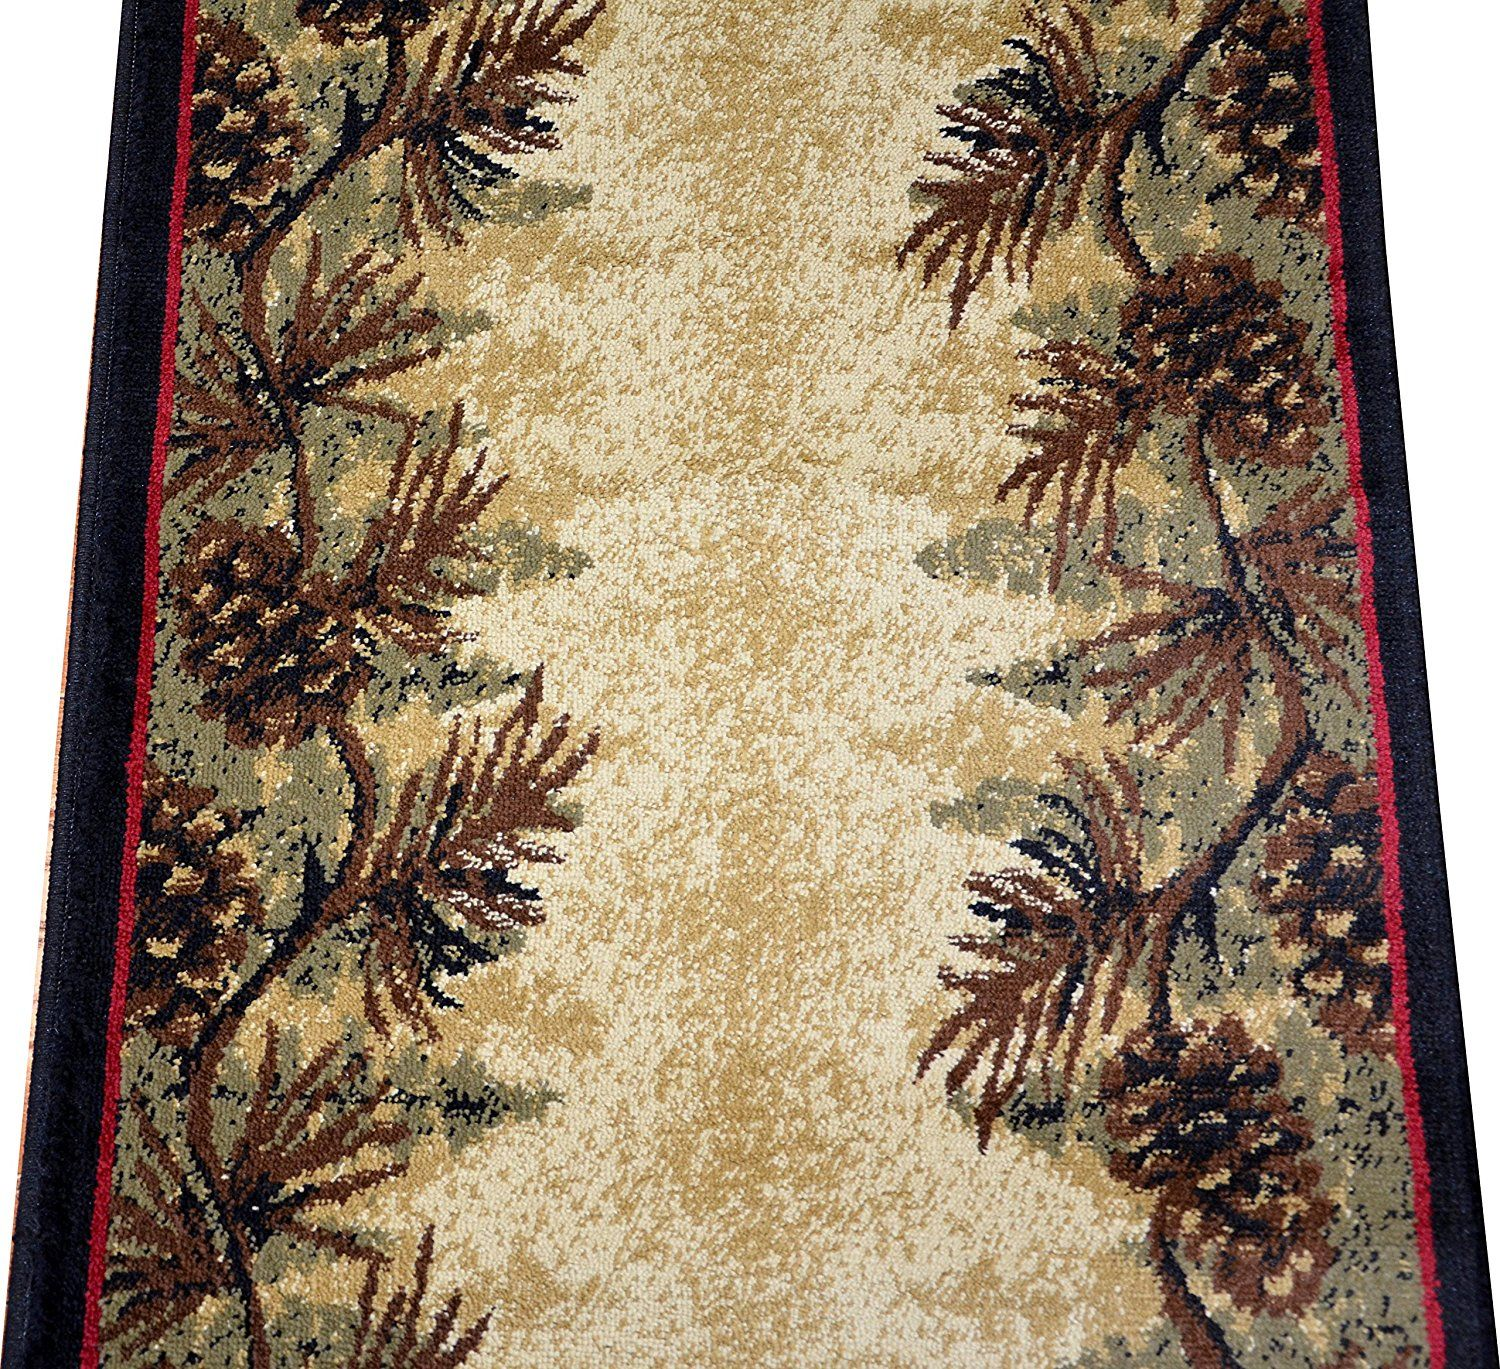 Hallway carpet runners sold by the foot  Amazon Dean Mt Le Conte Pine Cone Lodge Cabin Carpet Rug